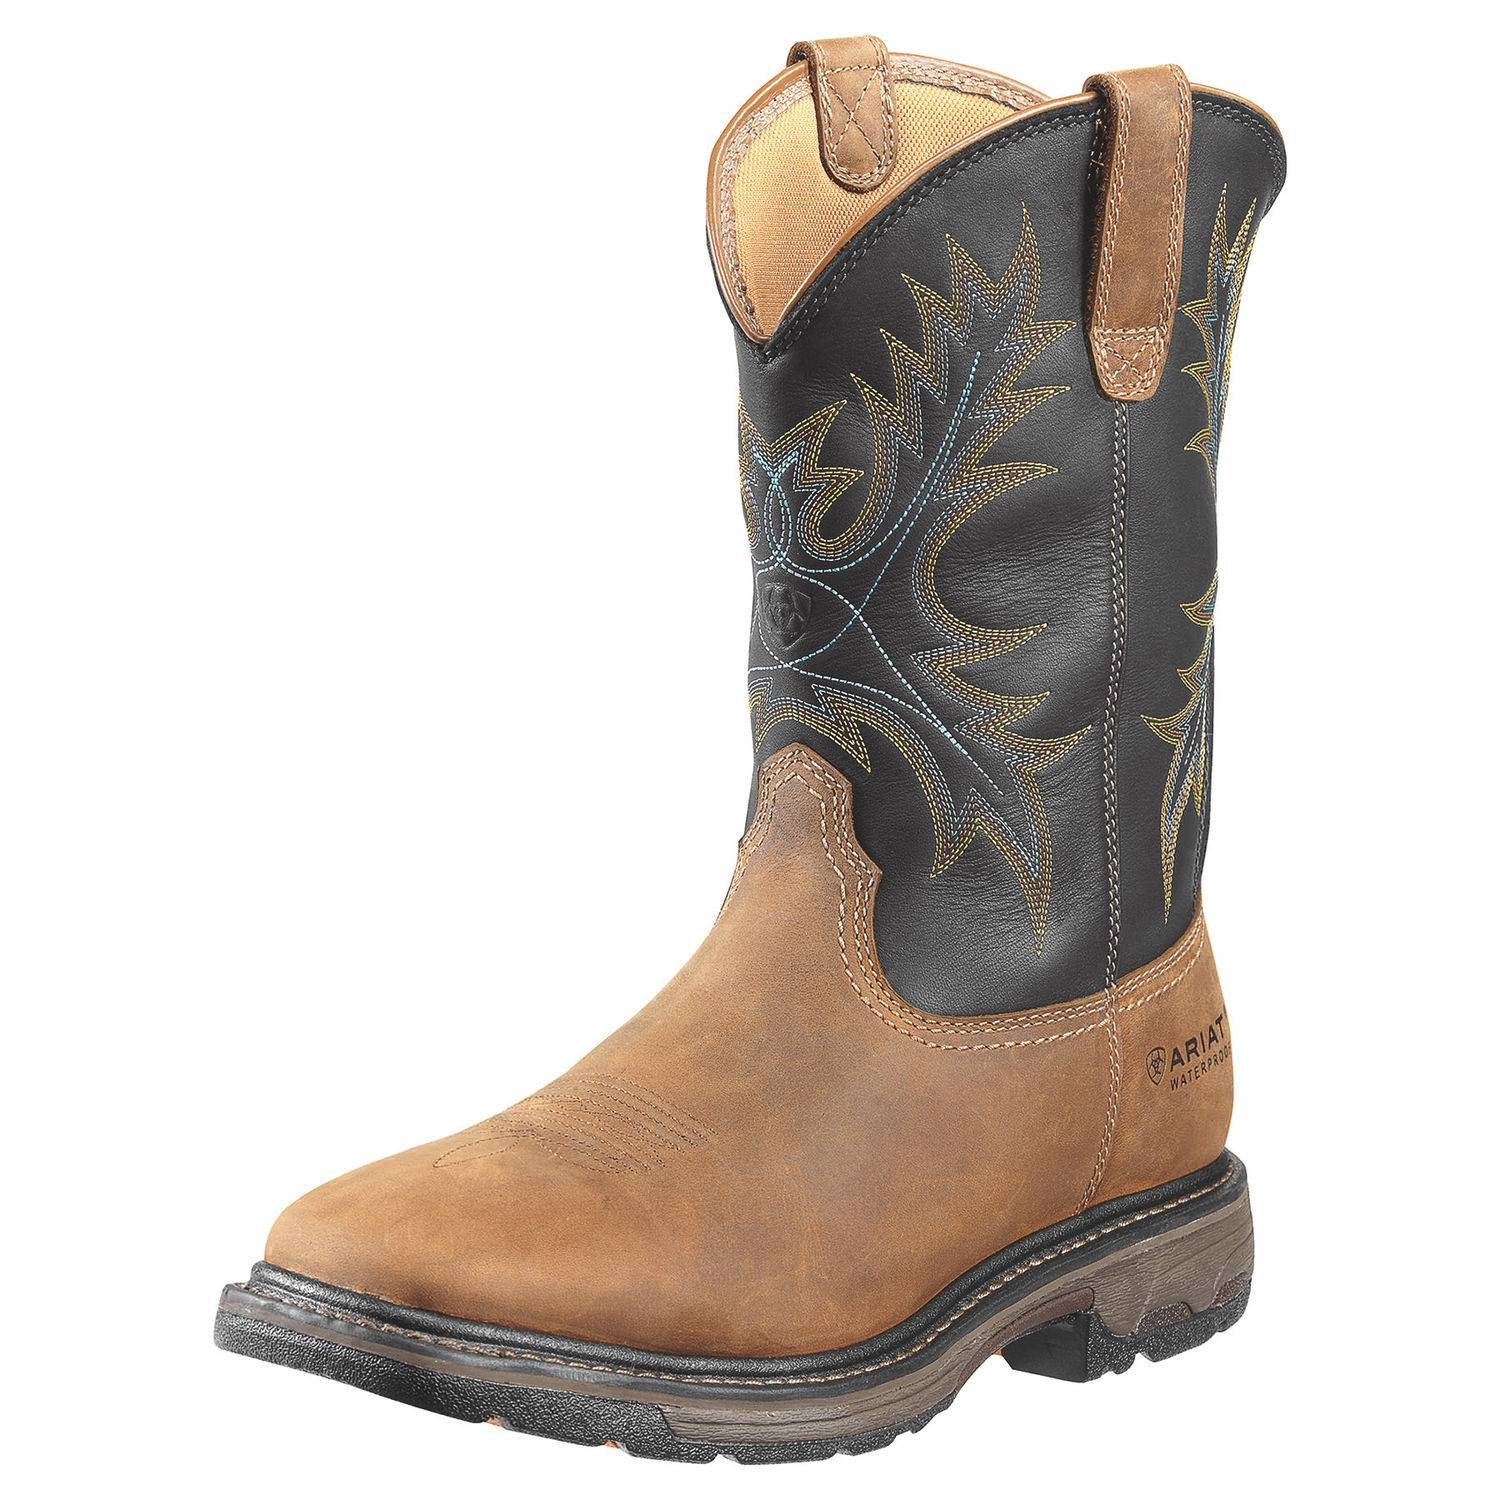 ARIAT Men's Workhog Square H2O Safety Toe Boot